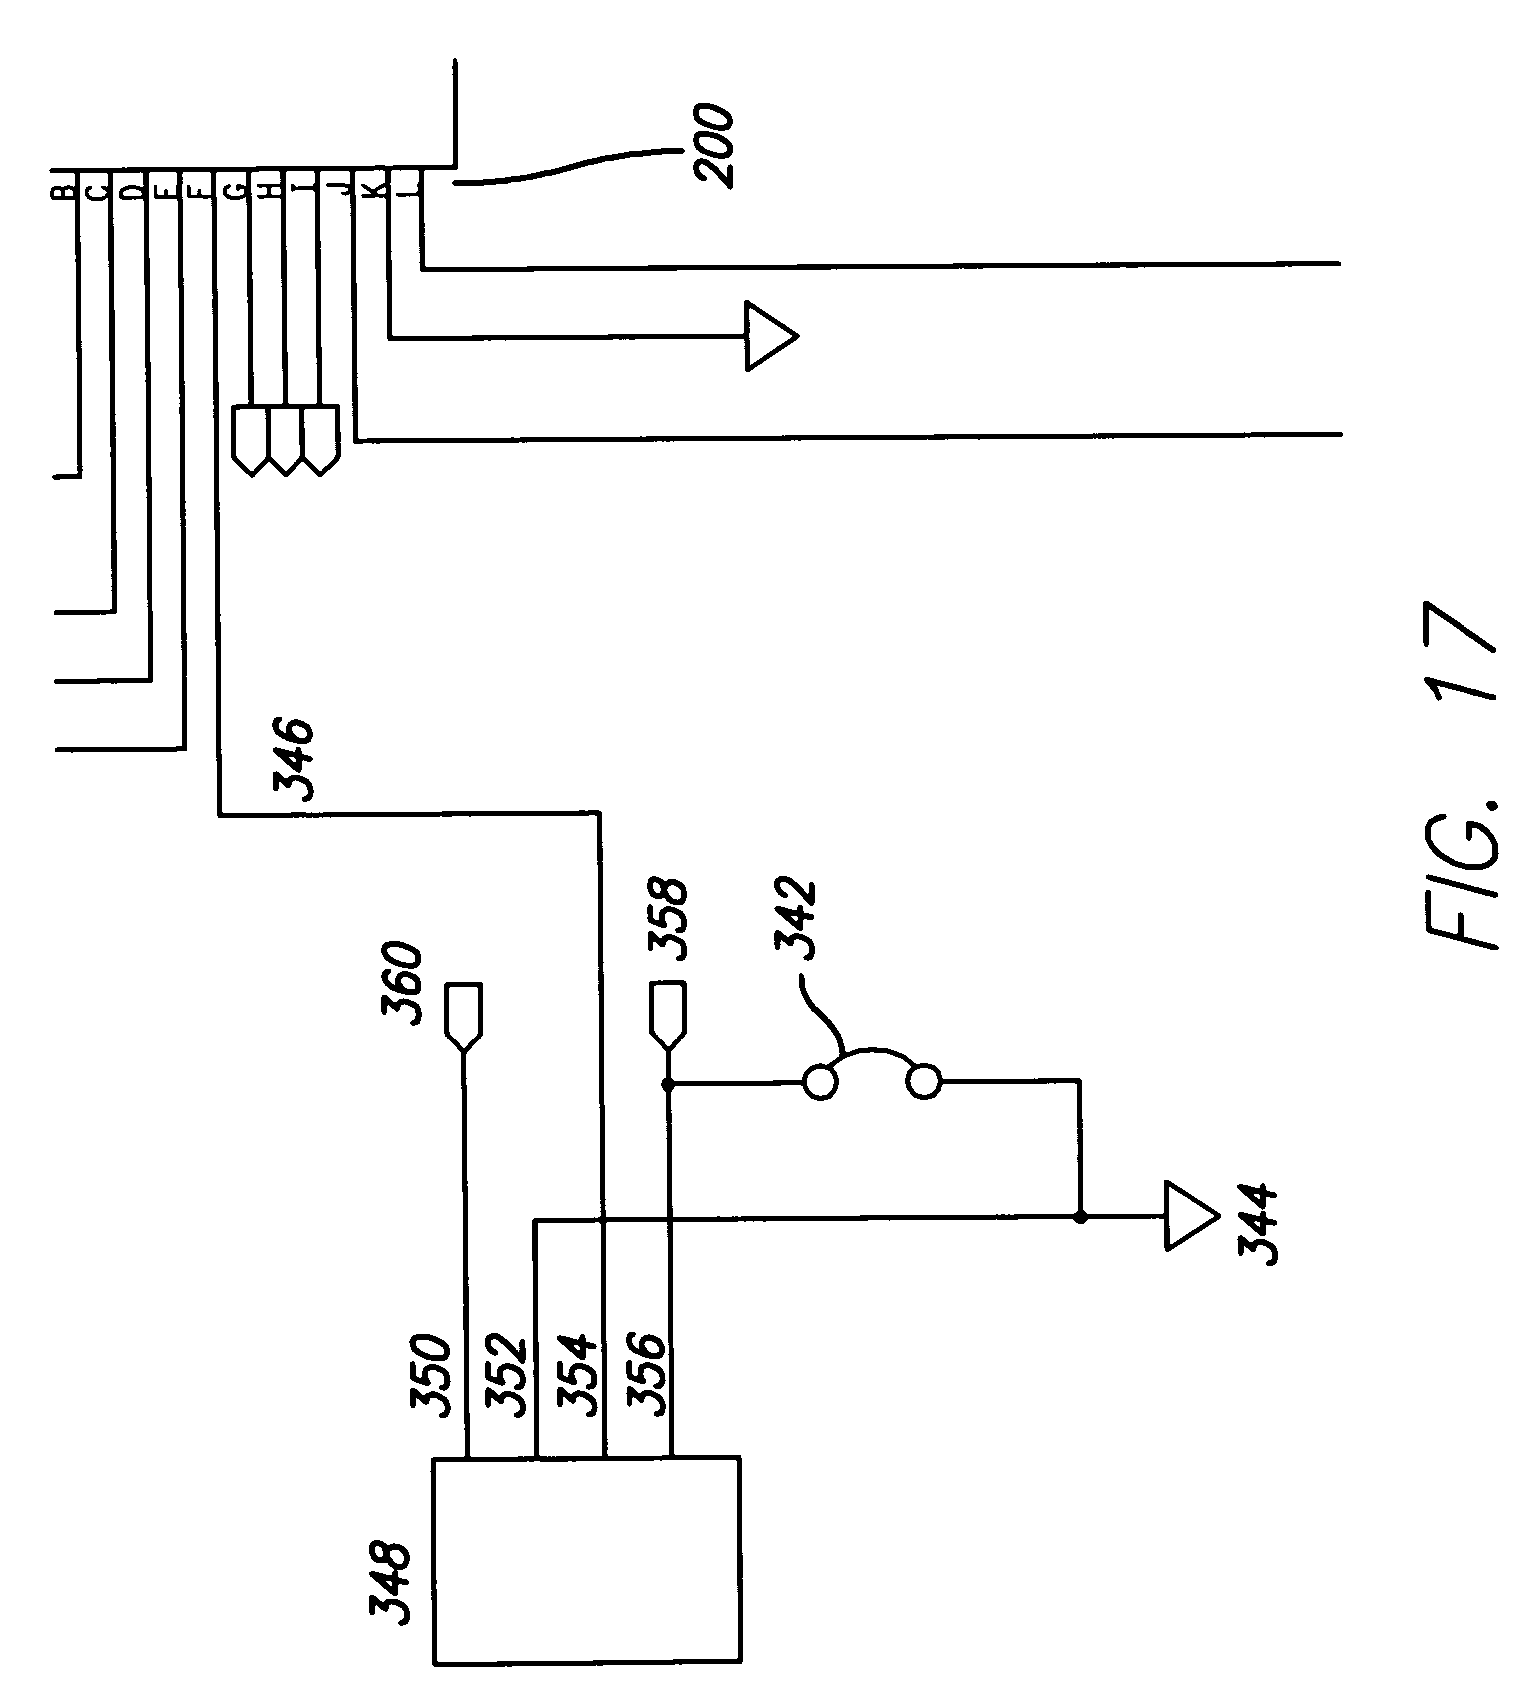 12v winch motor wiring diagram images ramsey winch motor wiring motor wiring diagram patent drawing shih hsin electric